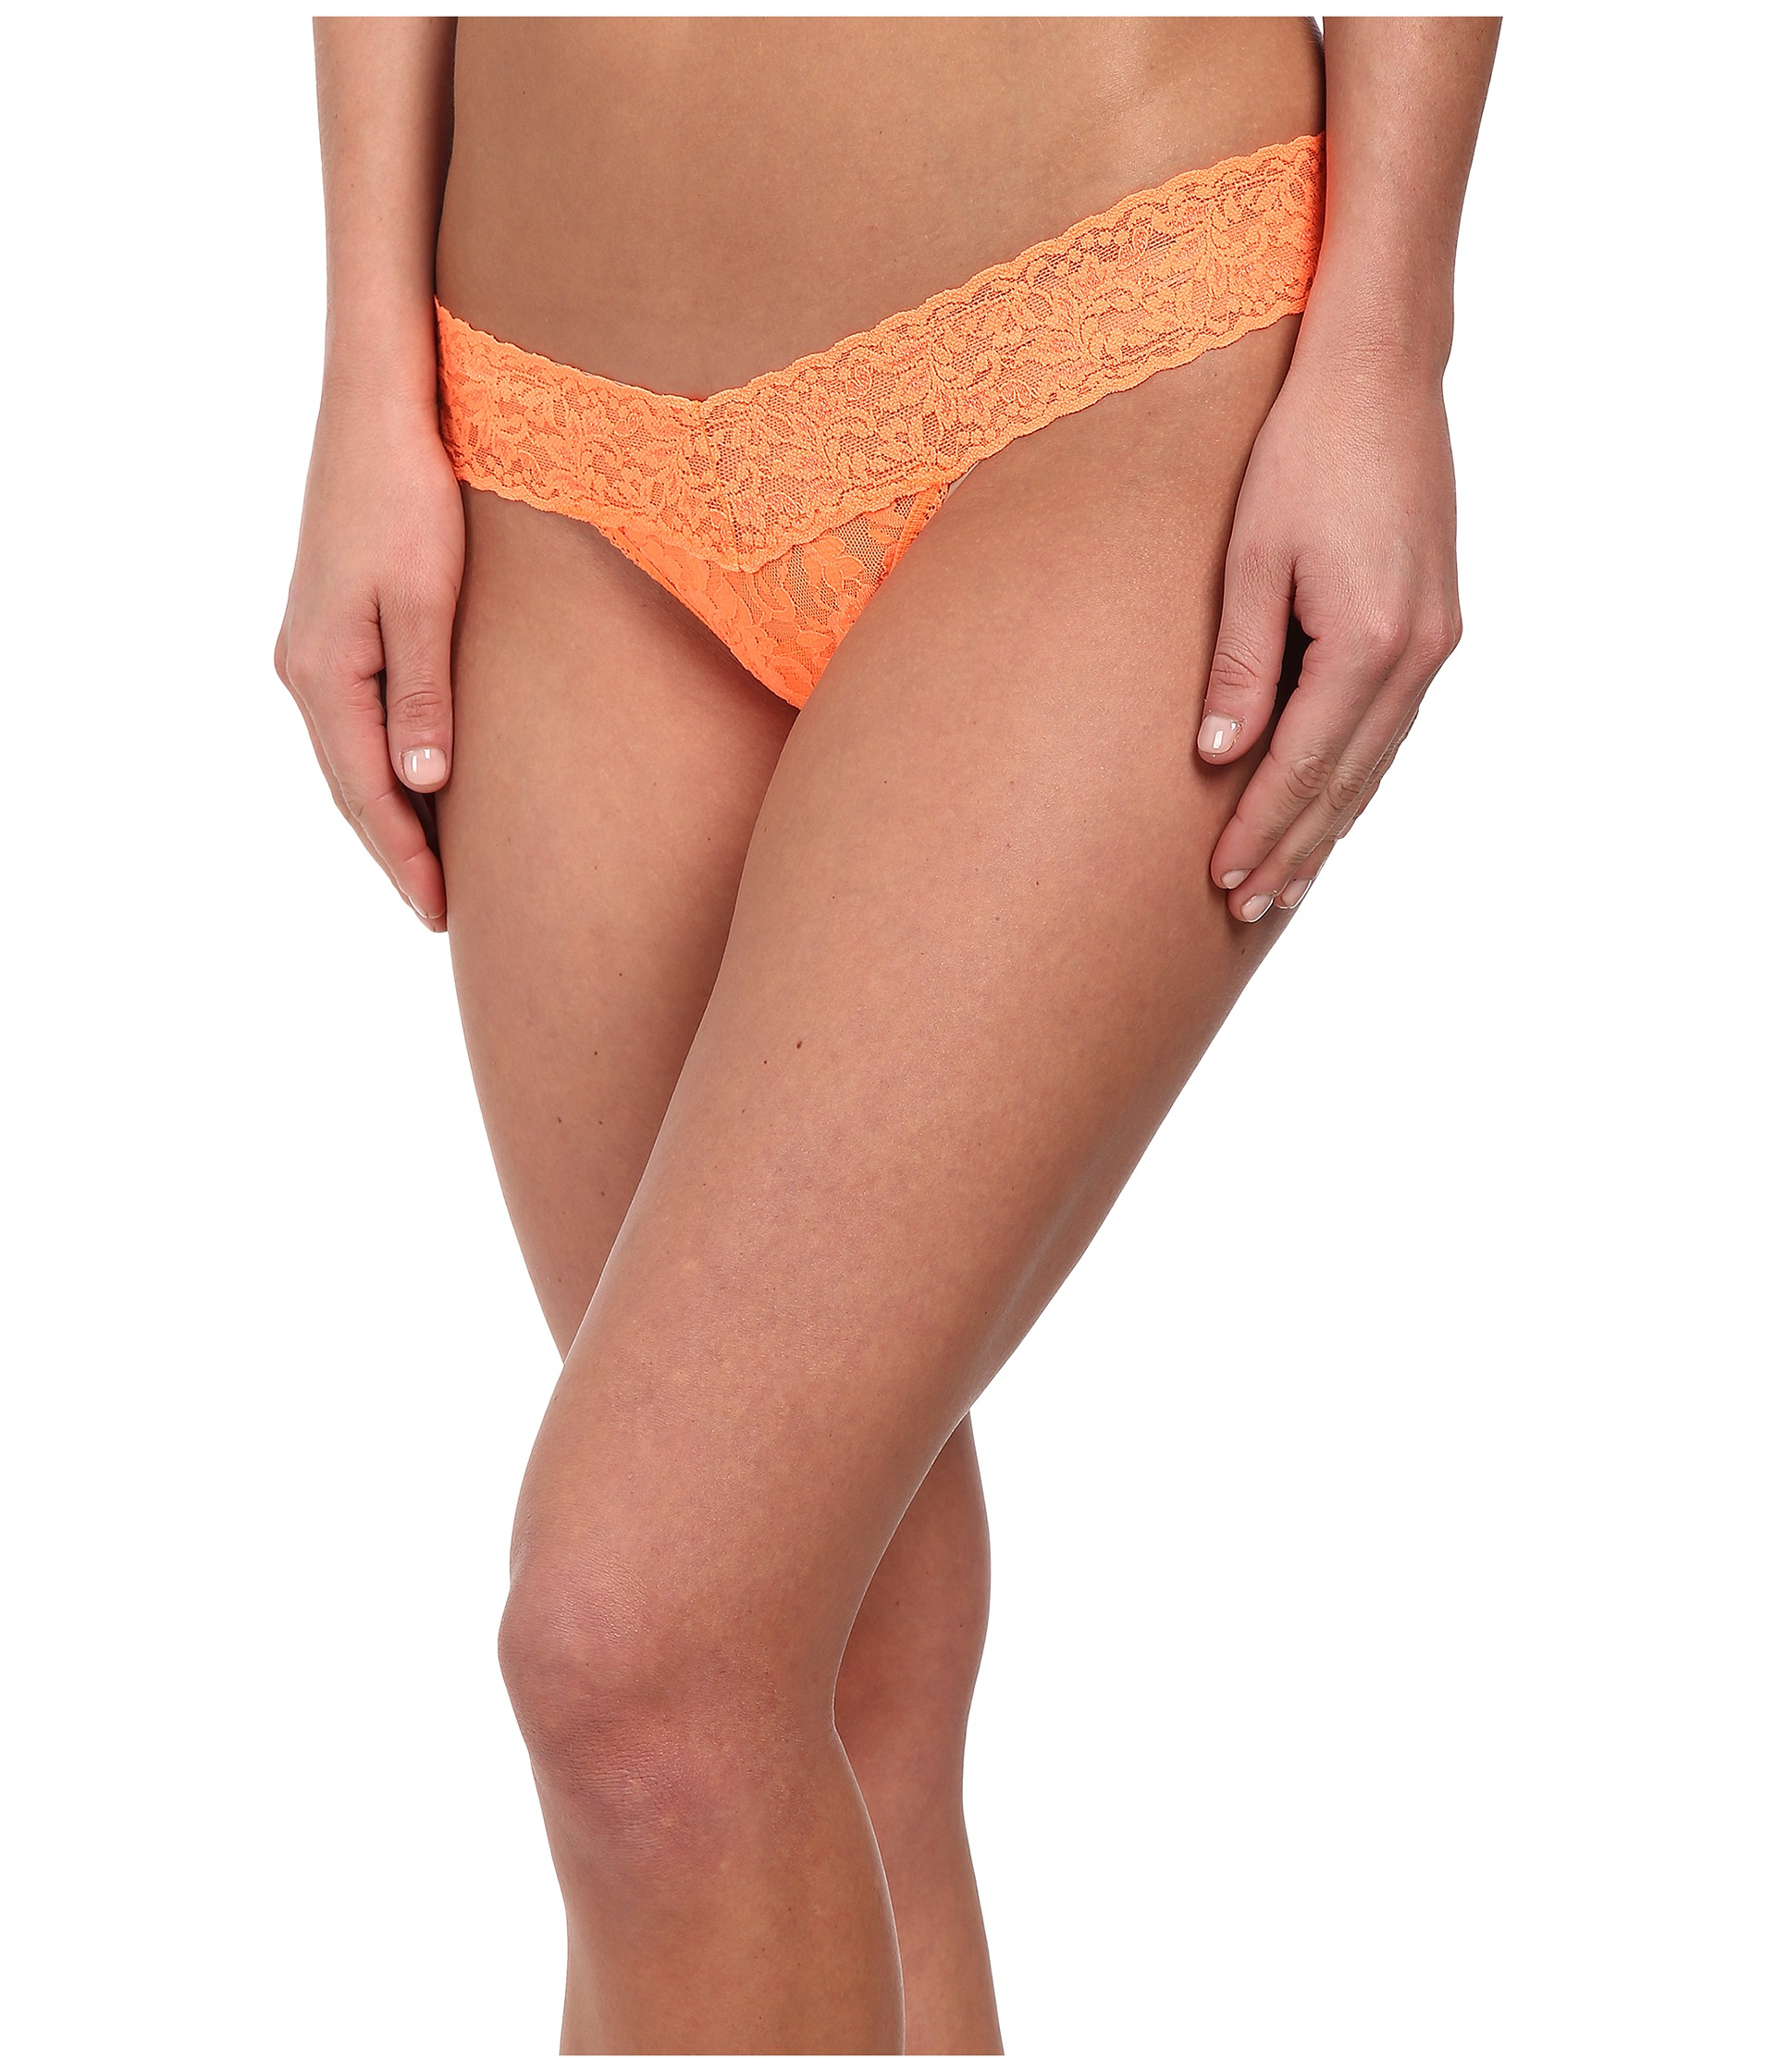 Victoria Secret Orange Thong With Sheer Stripes Size L, NWT. Brand New. Victoria's Secret Extra Low Rise Thong Halloween Bat Orange Lace L New w/ Tag. Brand New · Victoria's Secret · L · Thongs.